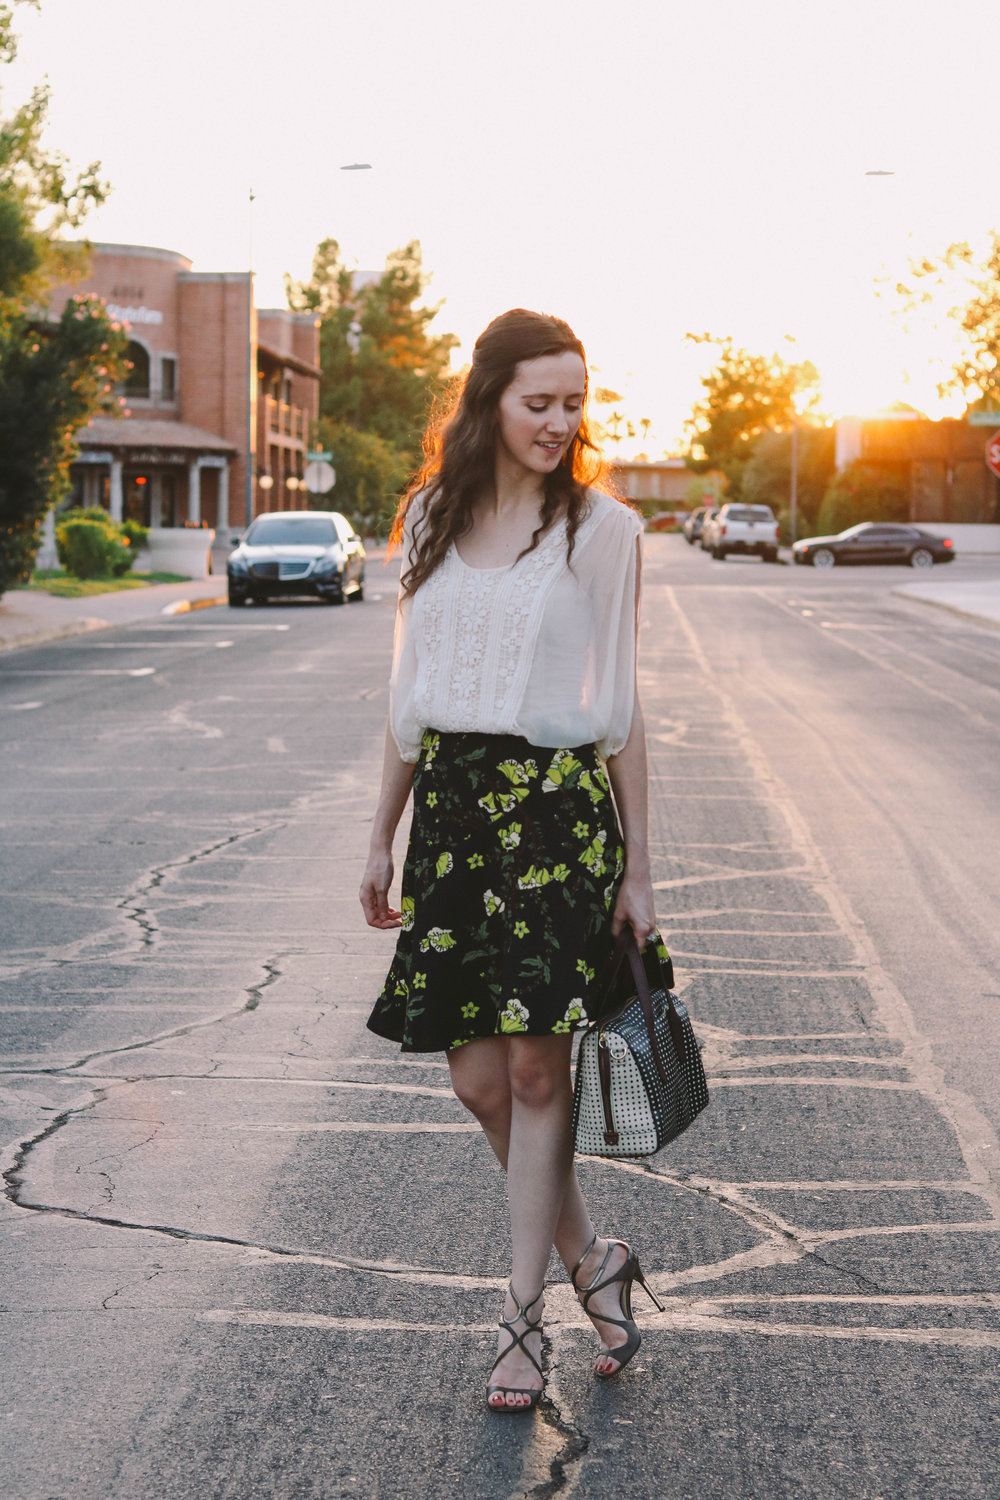 bb-fall-floral-skirt (1 of 1).jpg